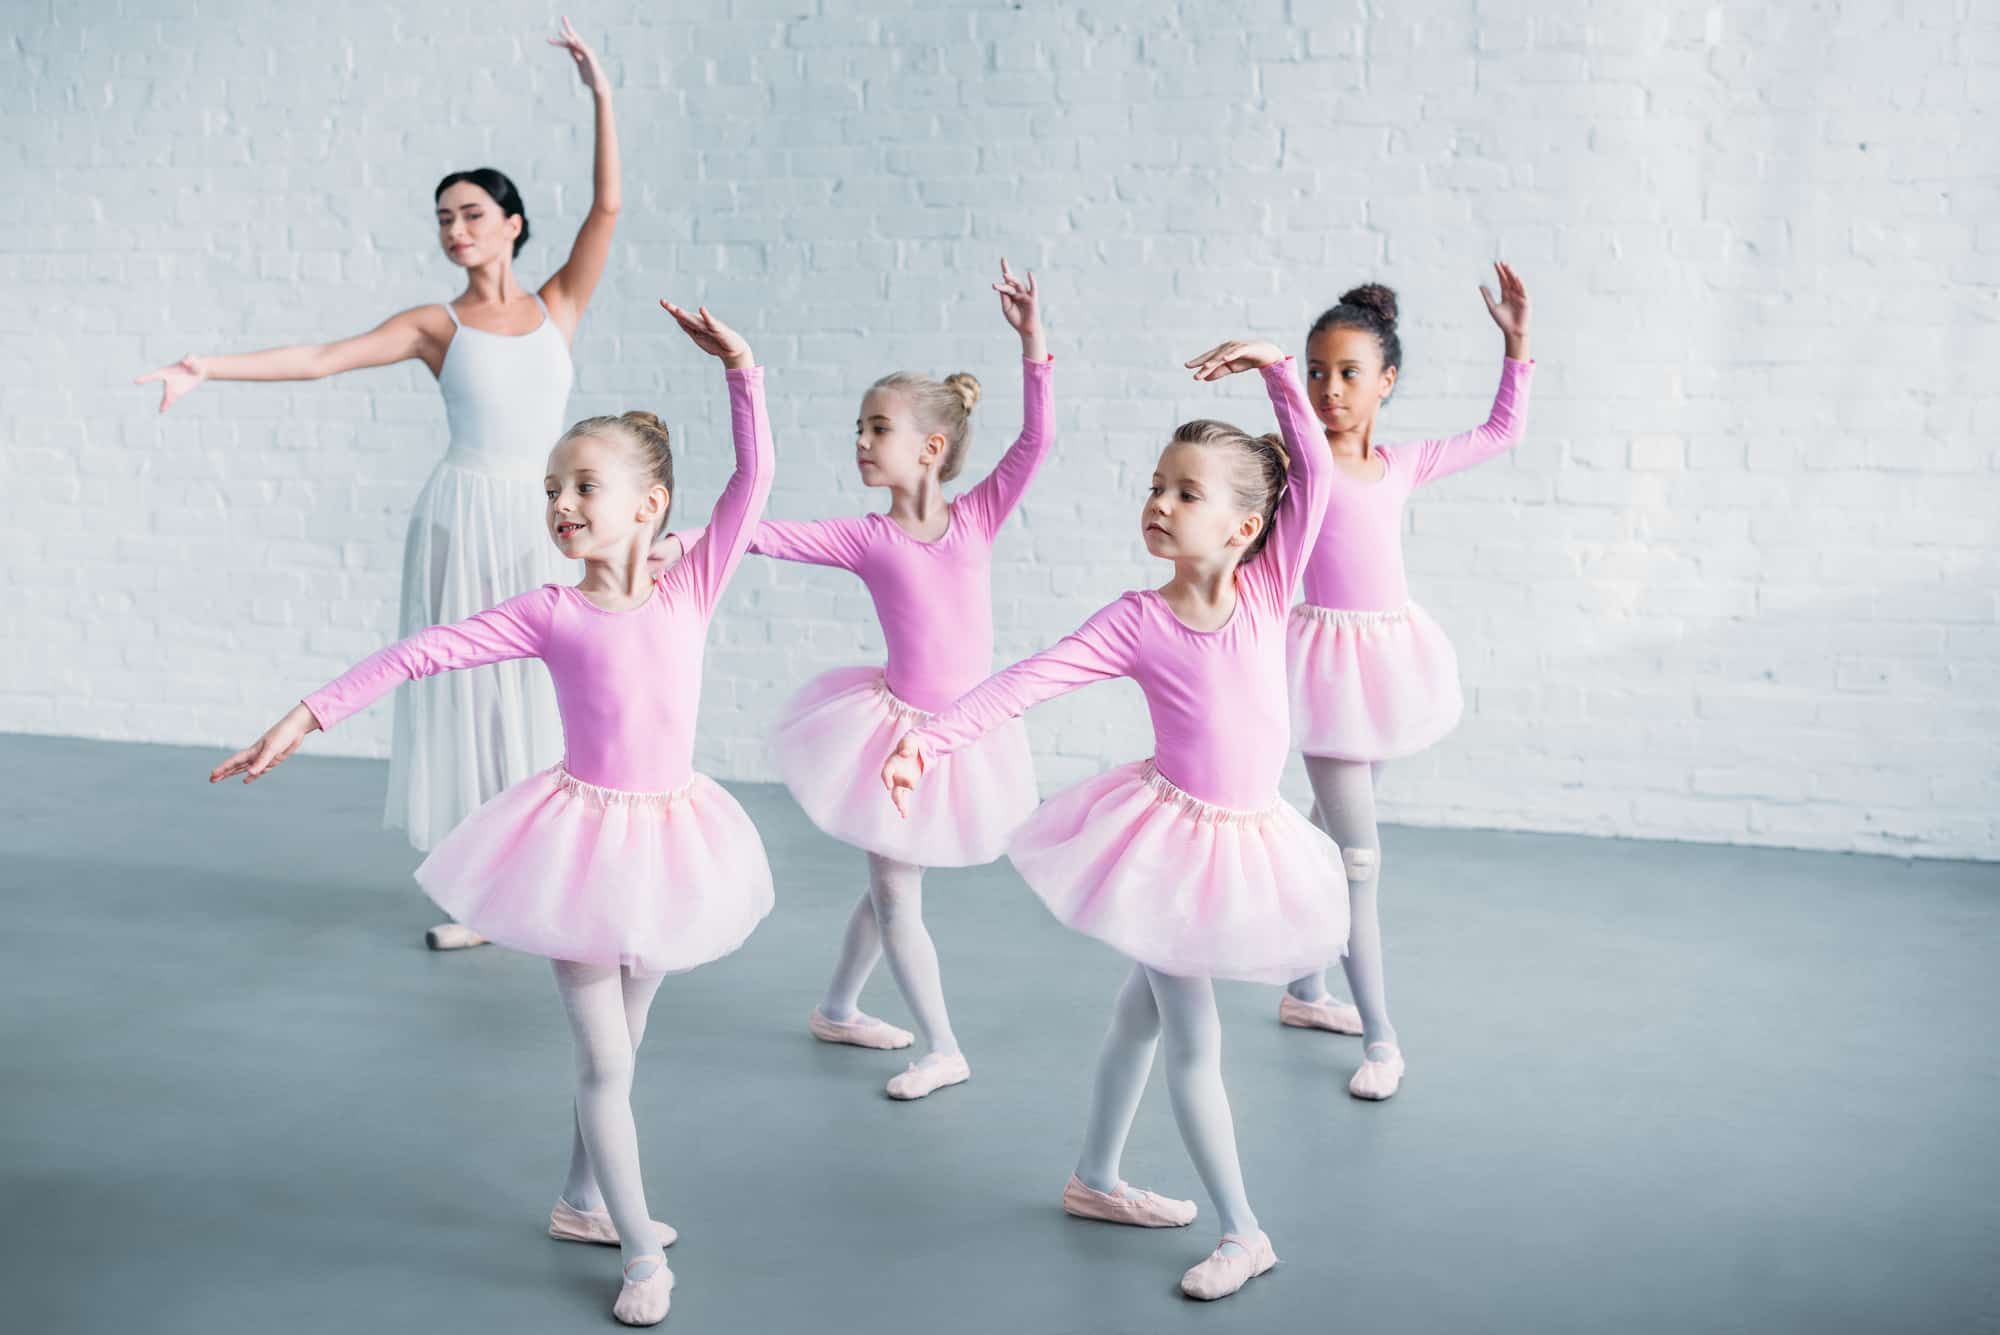 dance photography in ballet